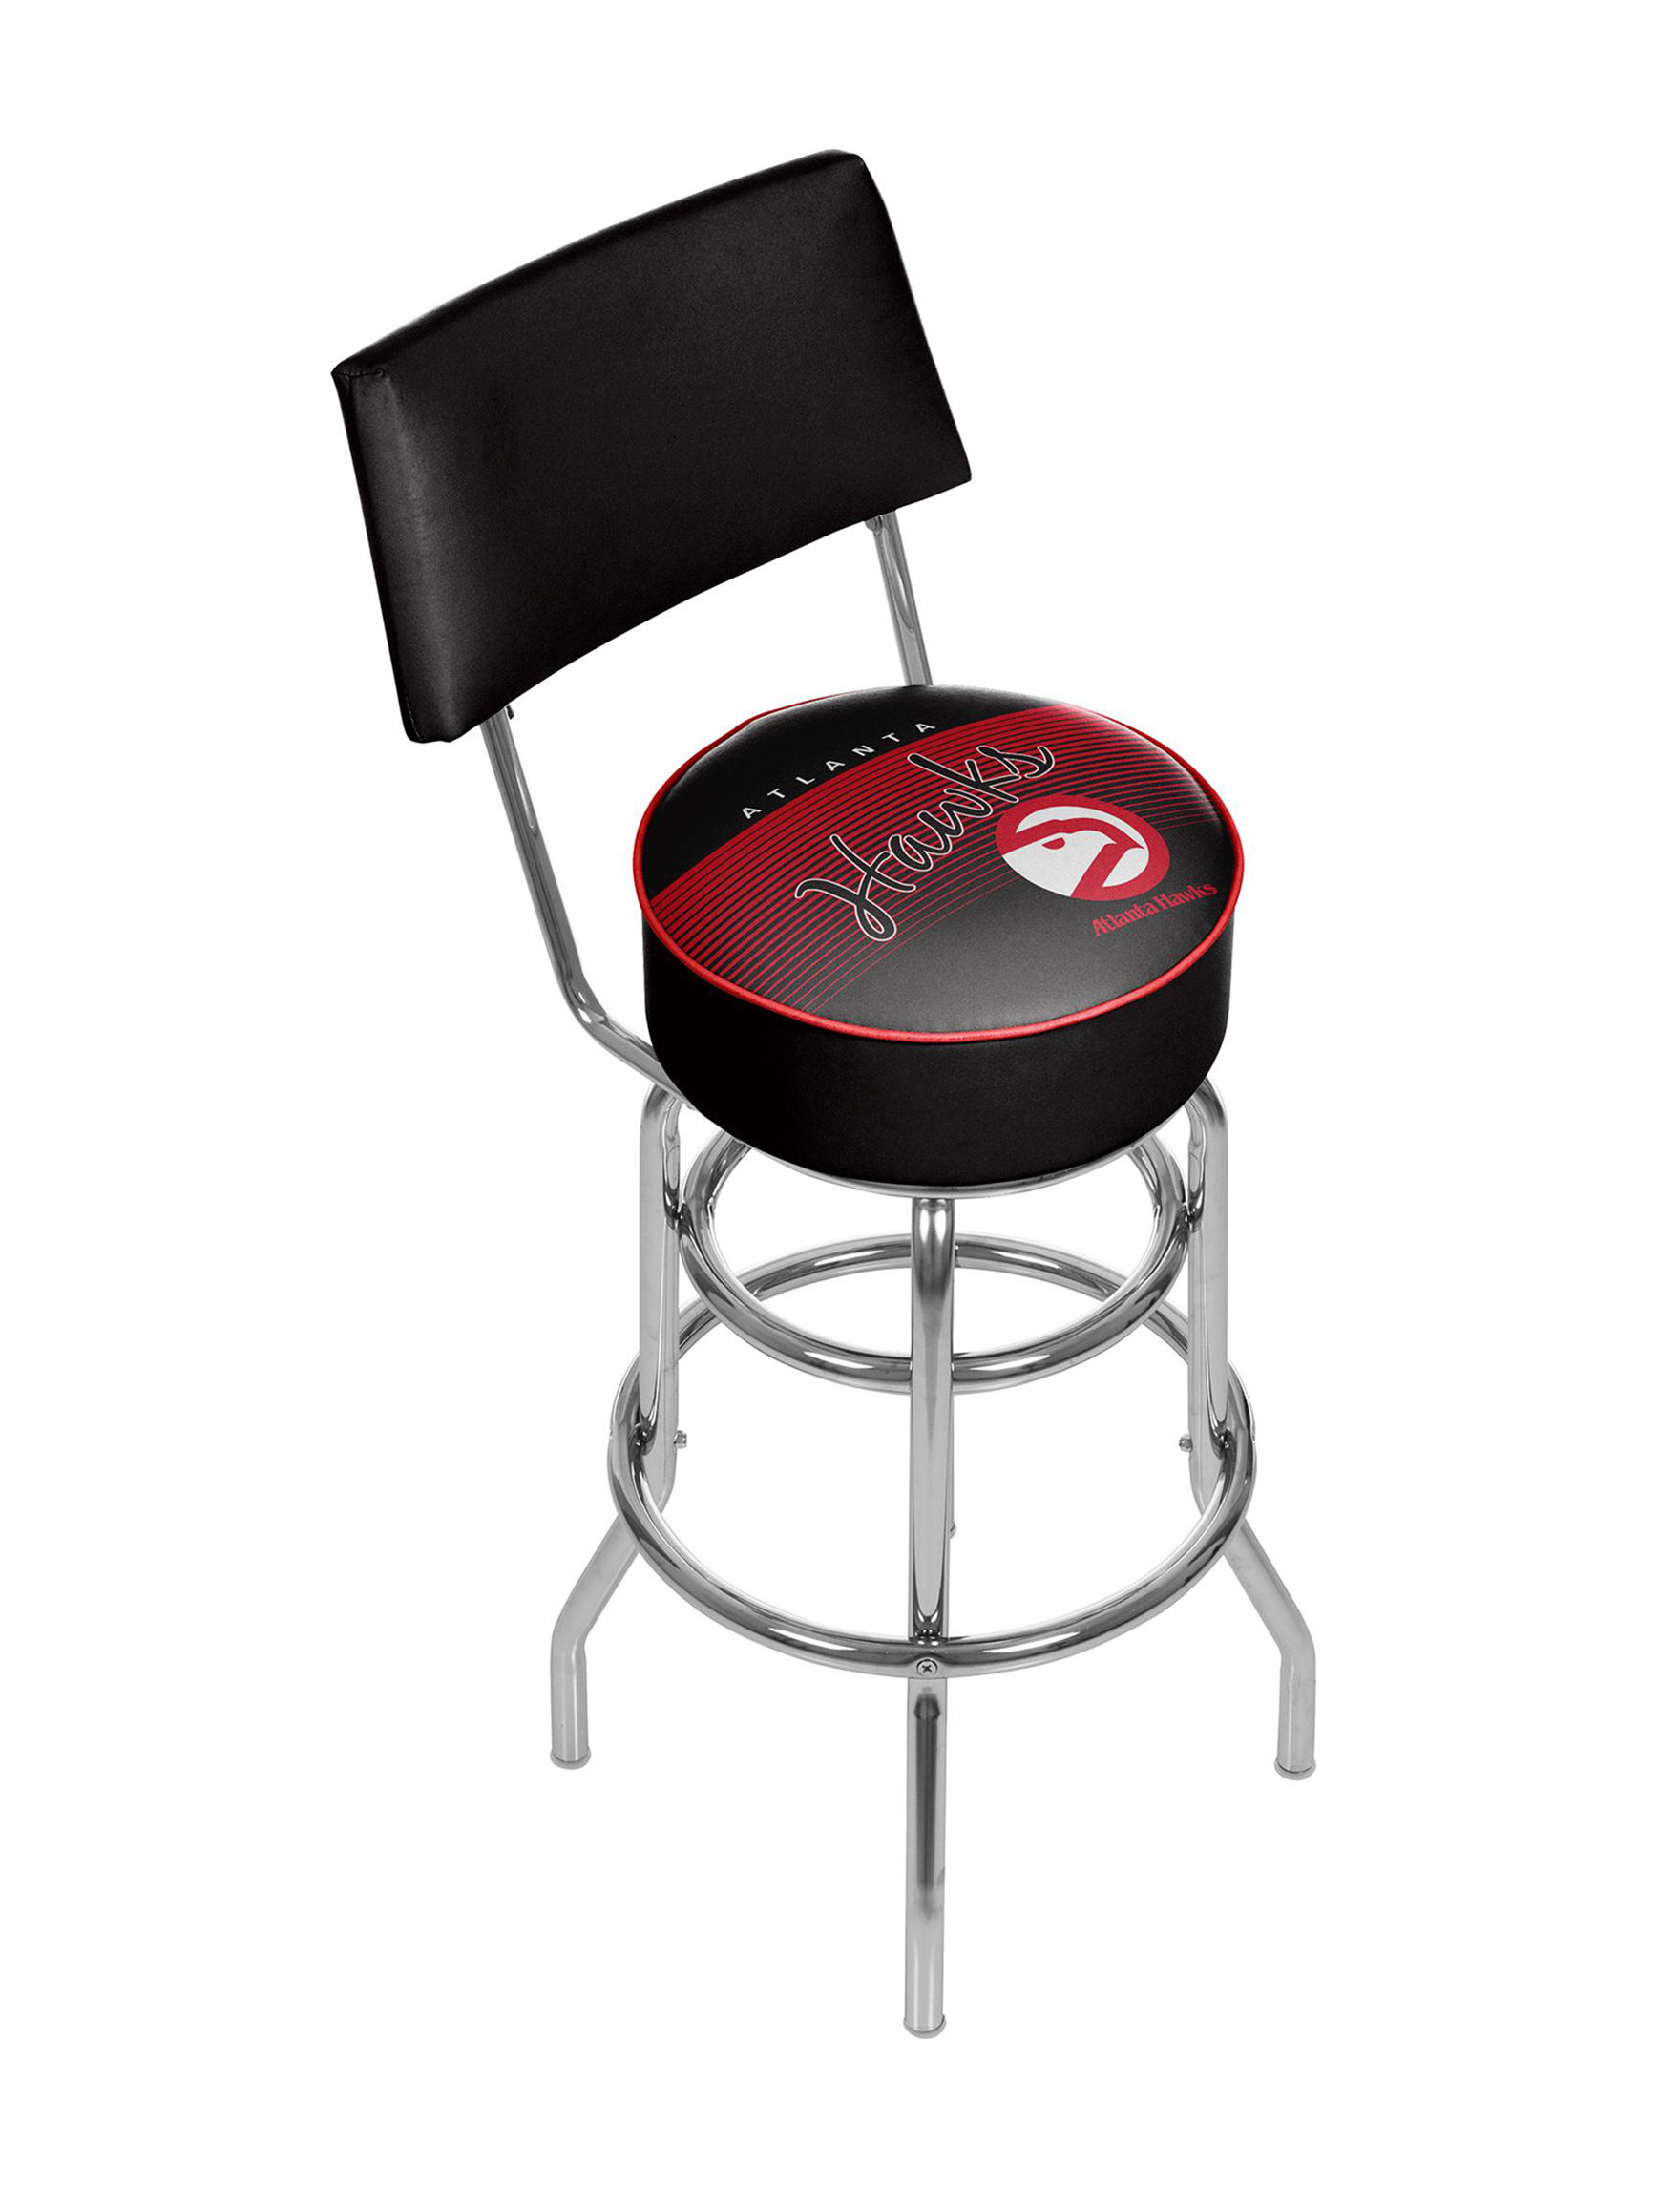 Trademark Global Red / Black / White Bar & Kitchen Stools Kitchen & Dining Furniture